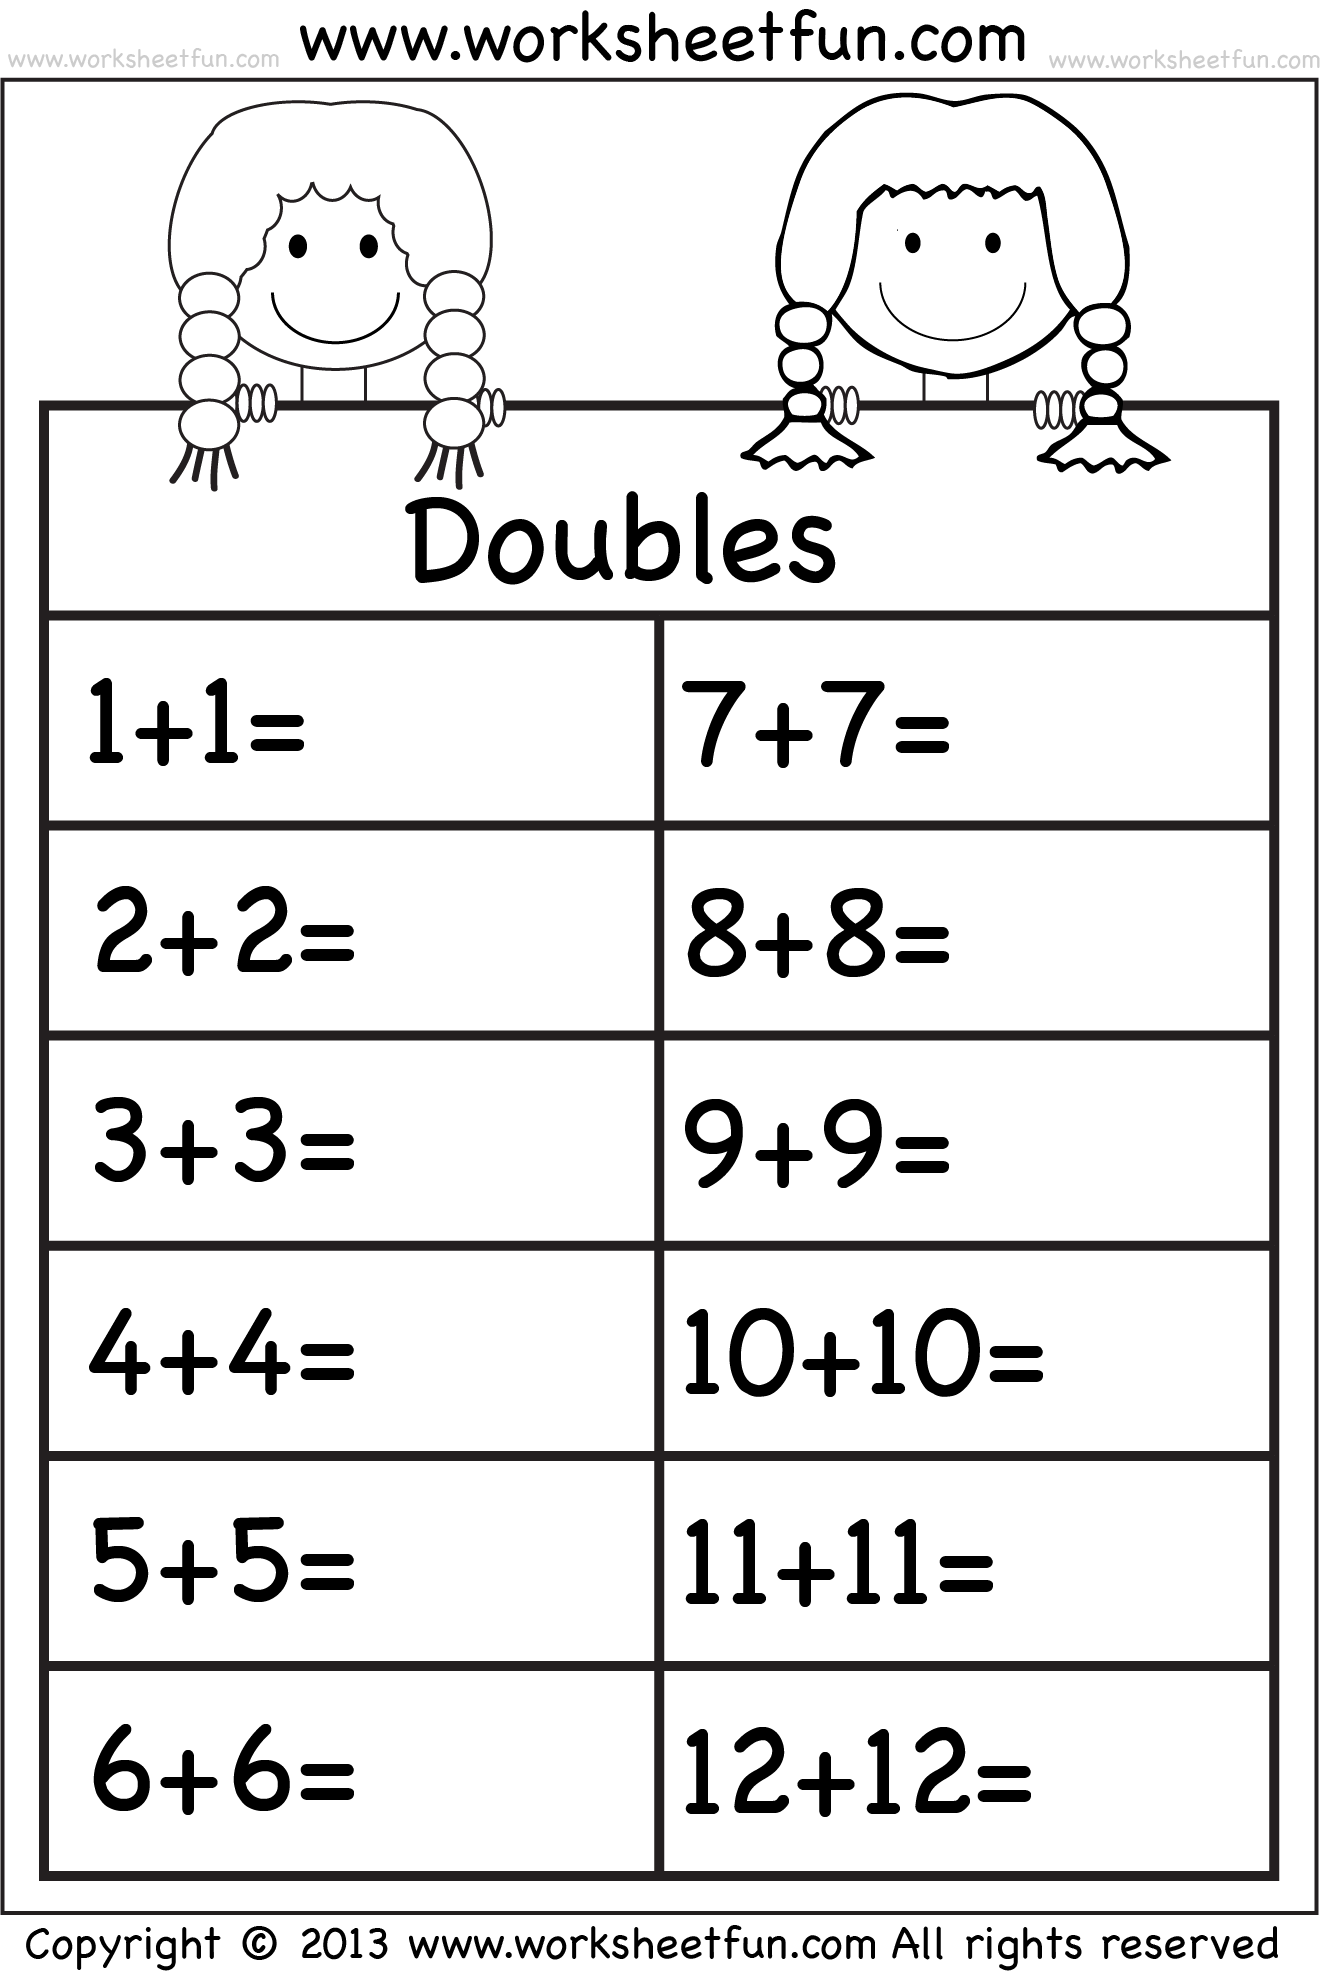 Doubles Math Facts Worksheet 19 Best Images Of Doubles